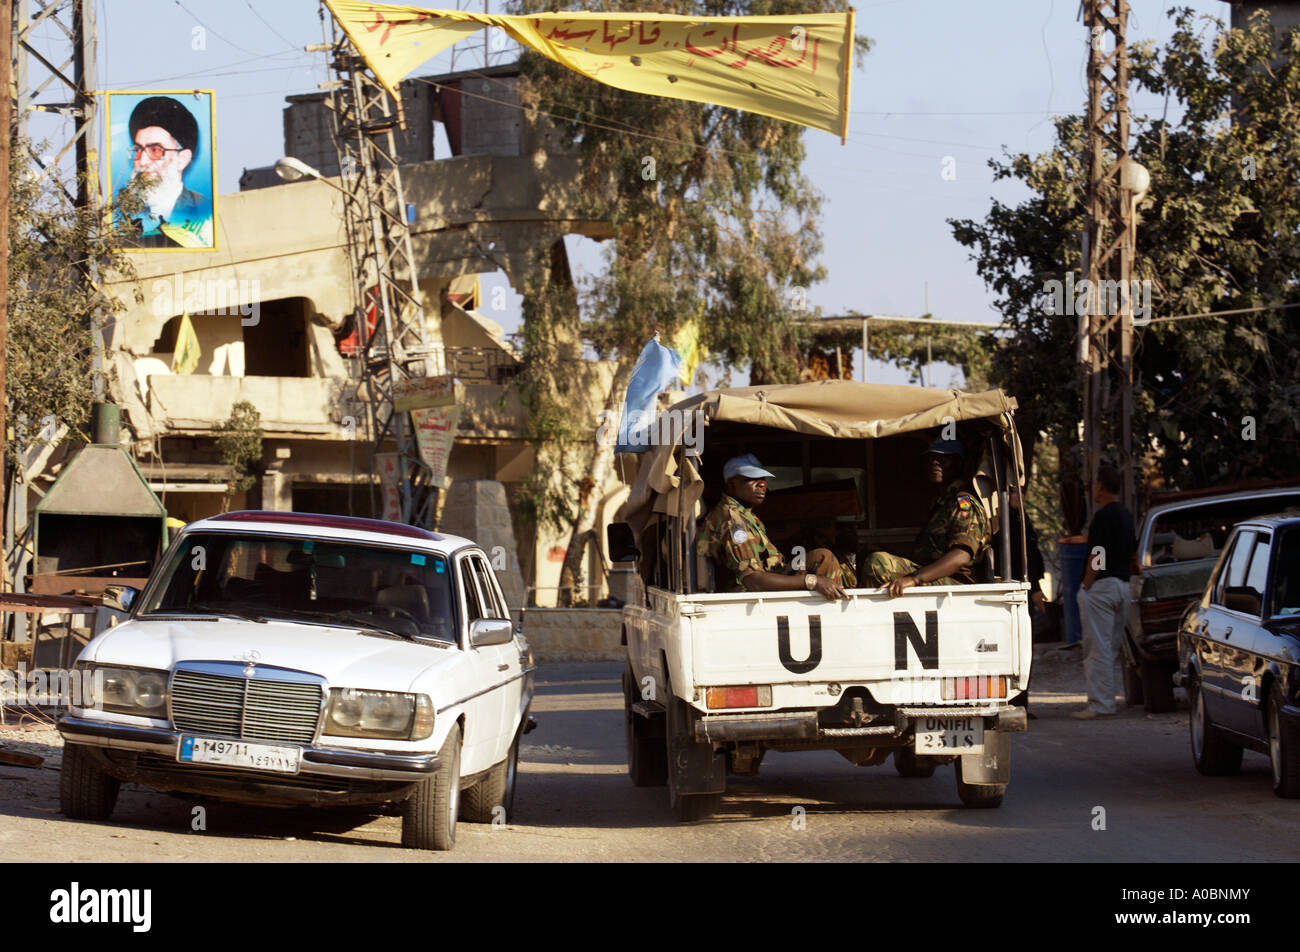 Images from the aftermath of the 2006 conflict that ensued between Israel and Hezbollah in Bint Jbeil, Southern Lebanon. - Stock Image